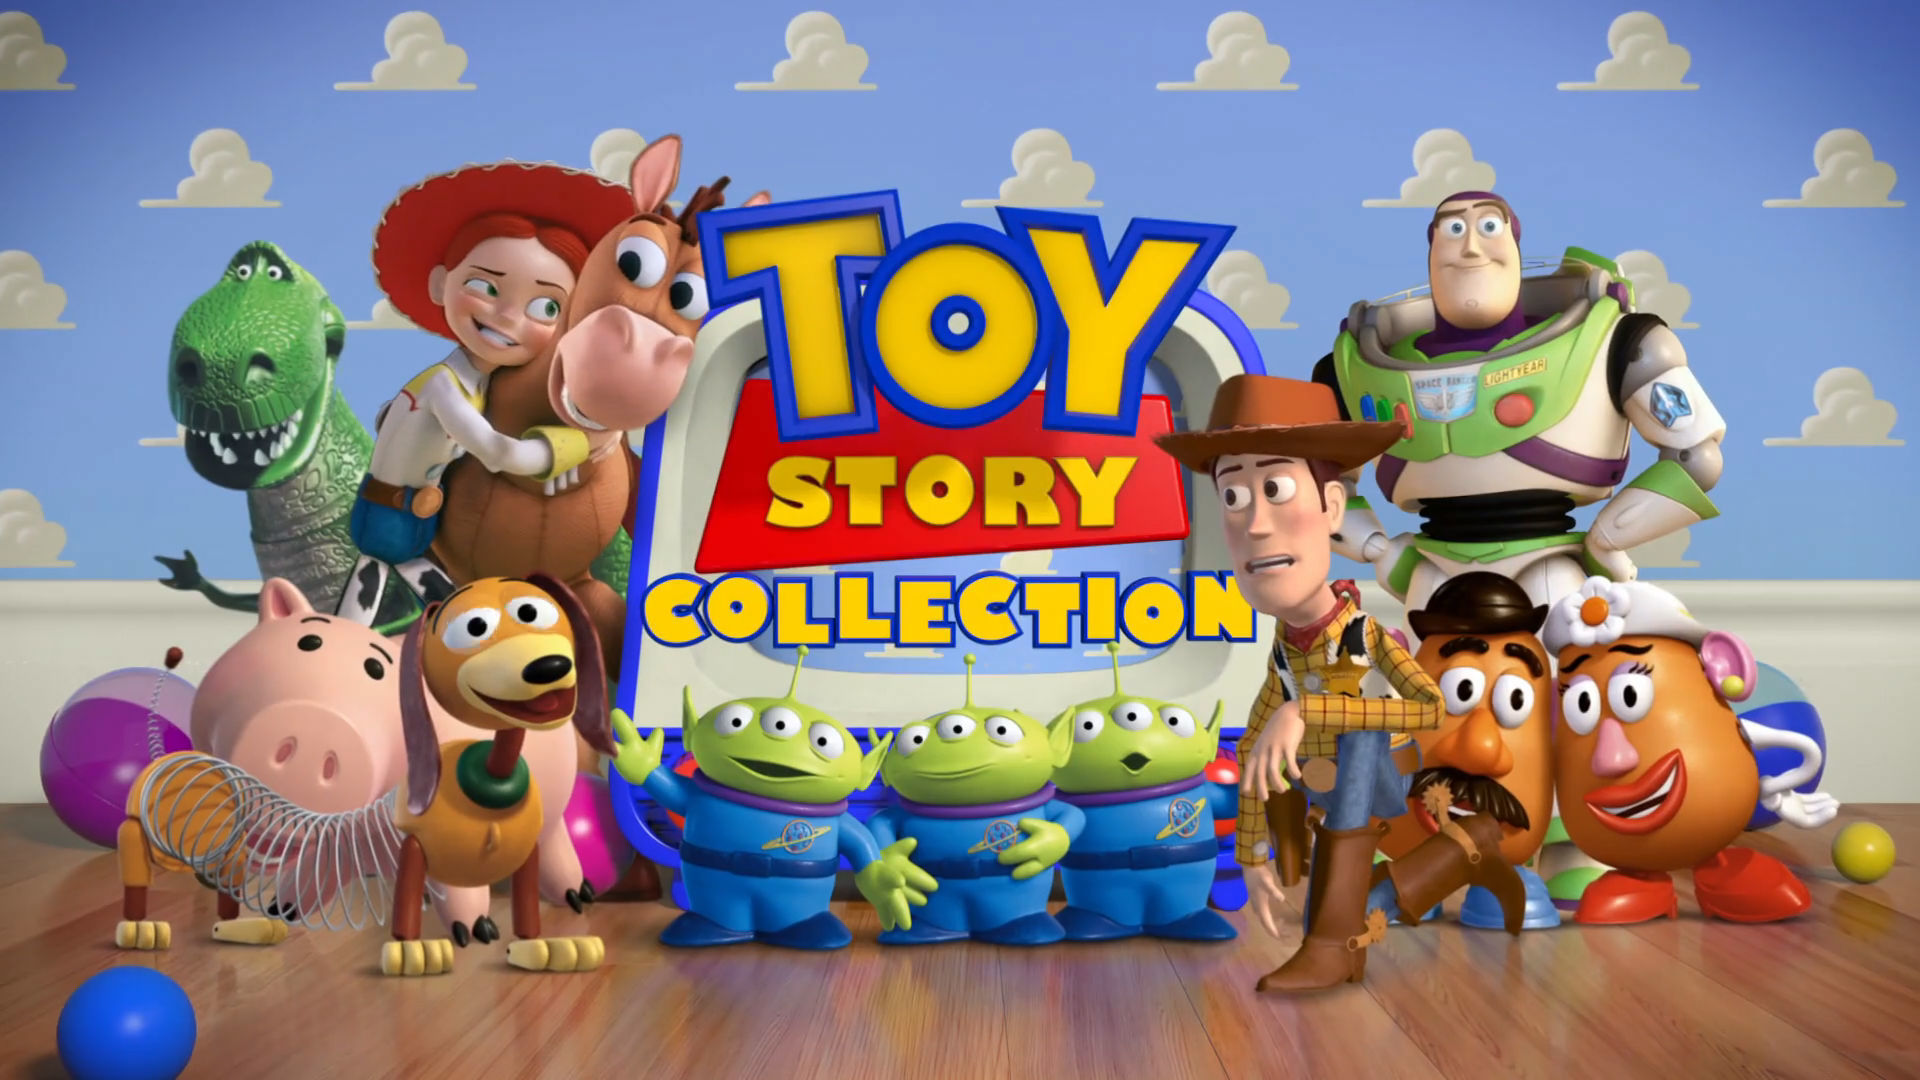 Toy Story 20th Anniversary on Disney Channel